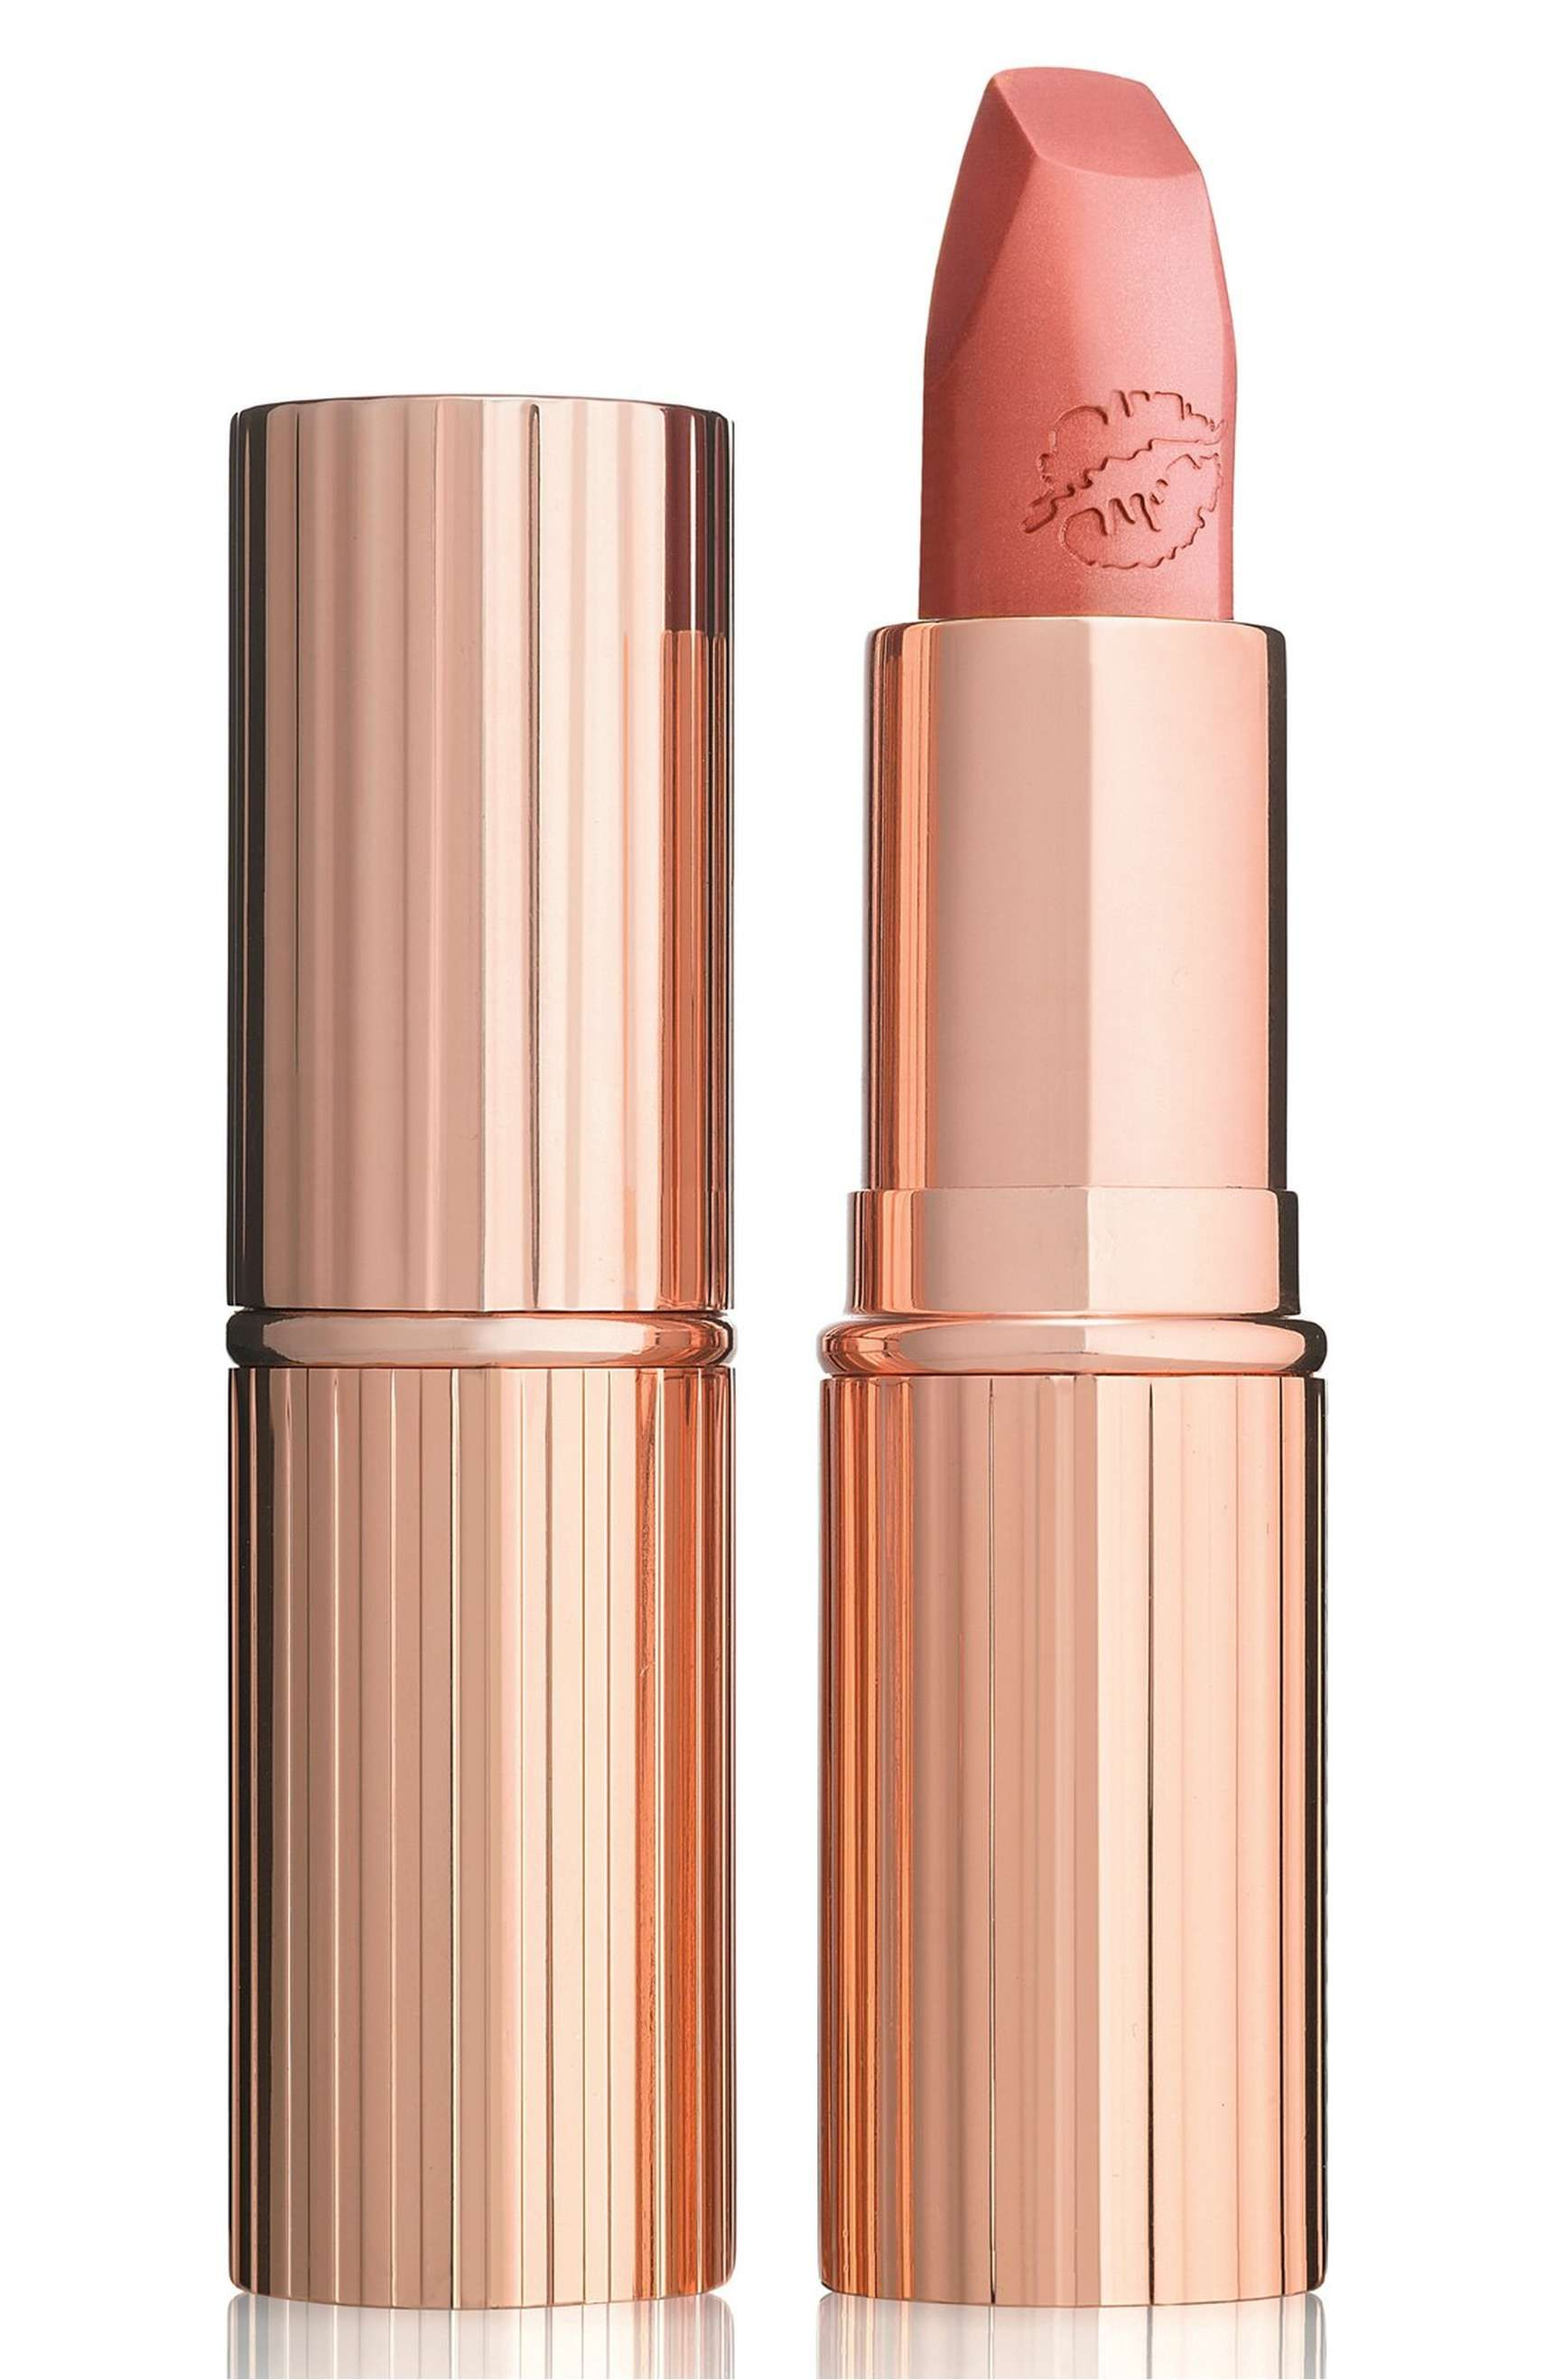 967cf2e3f22 28 Best Nude Lipsticks - Flattering Nude Lip Colors for 2018